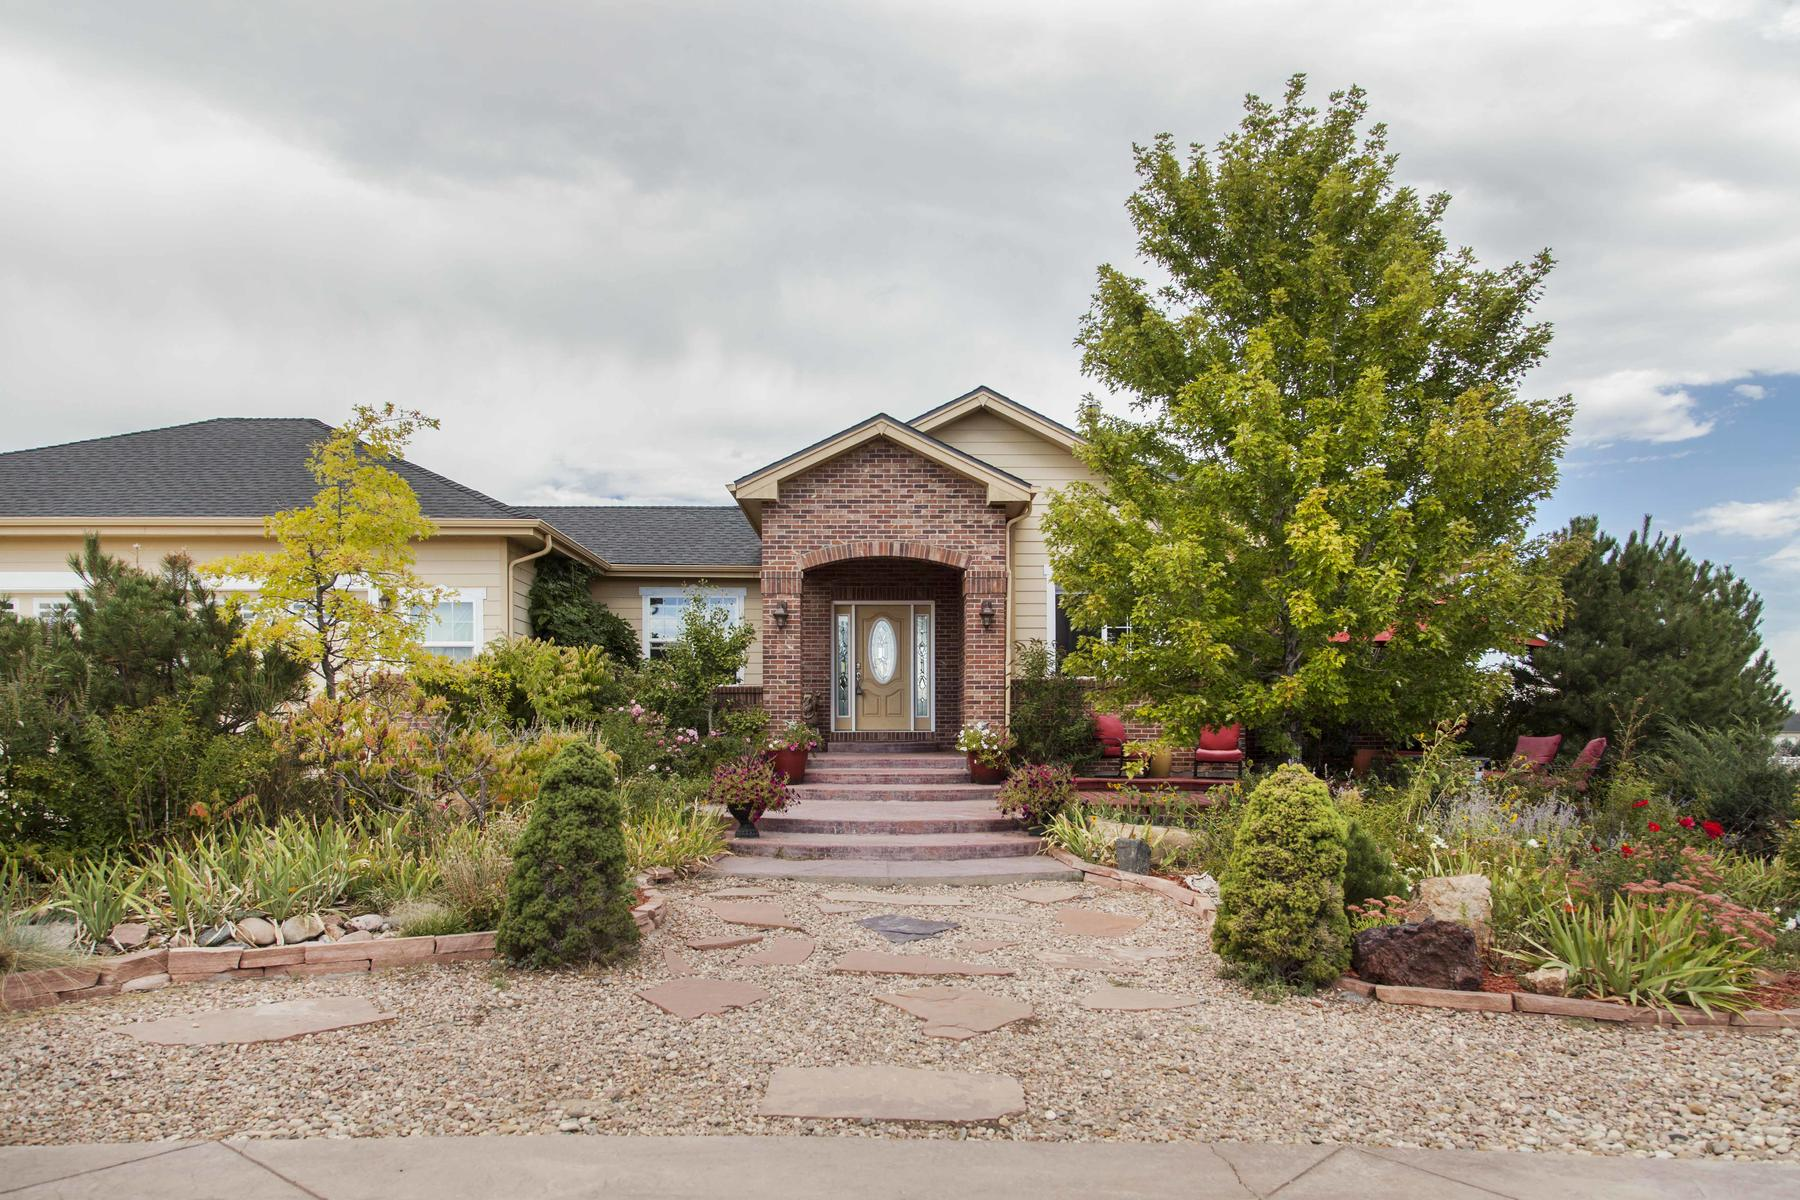 Single Family Home for Active at Welcome to your oasis 31049 E 150th Ave Brighton, Colorado 80603 United States